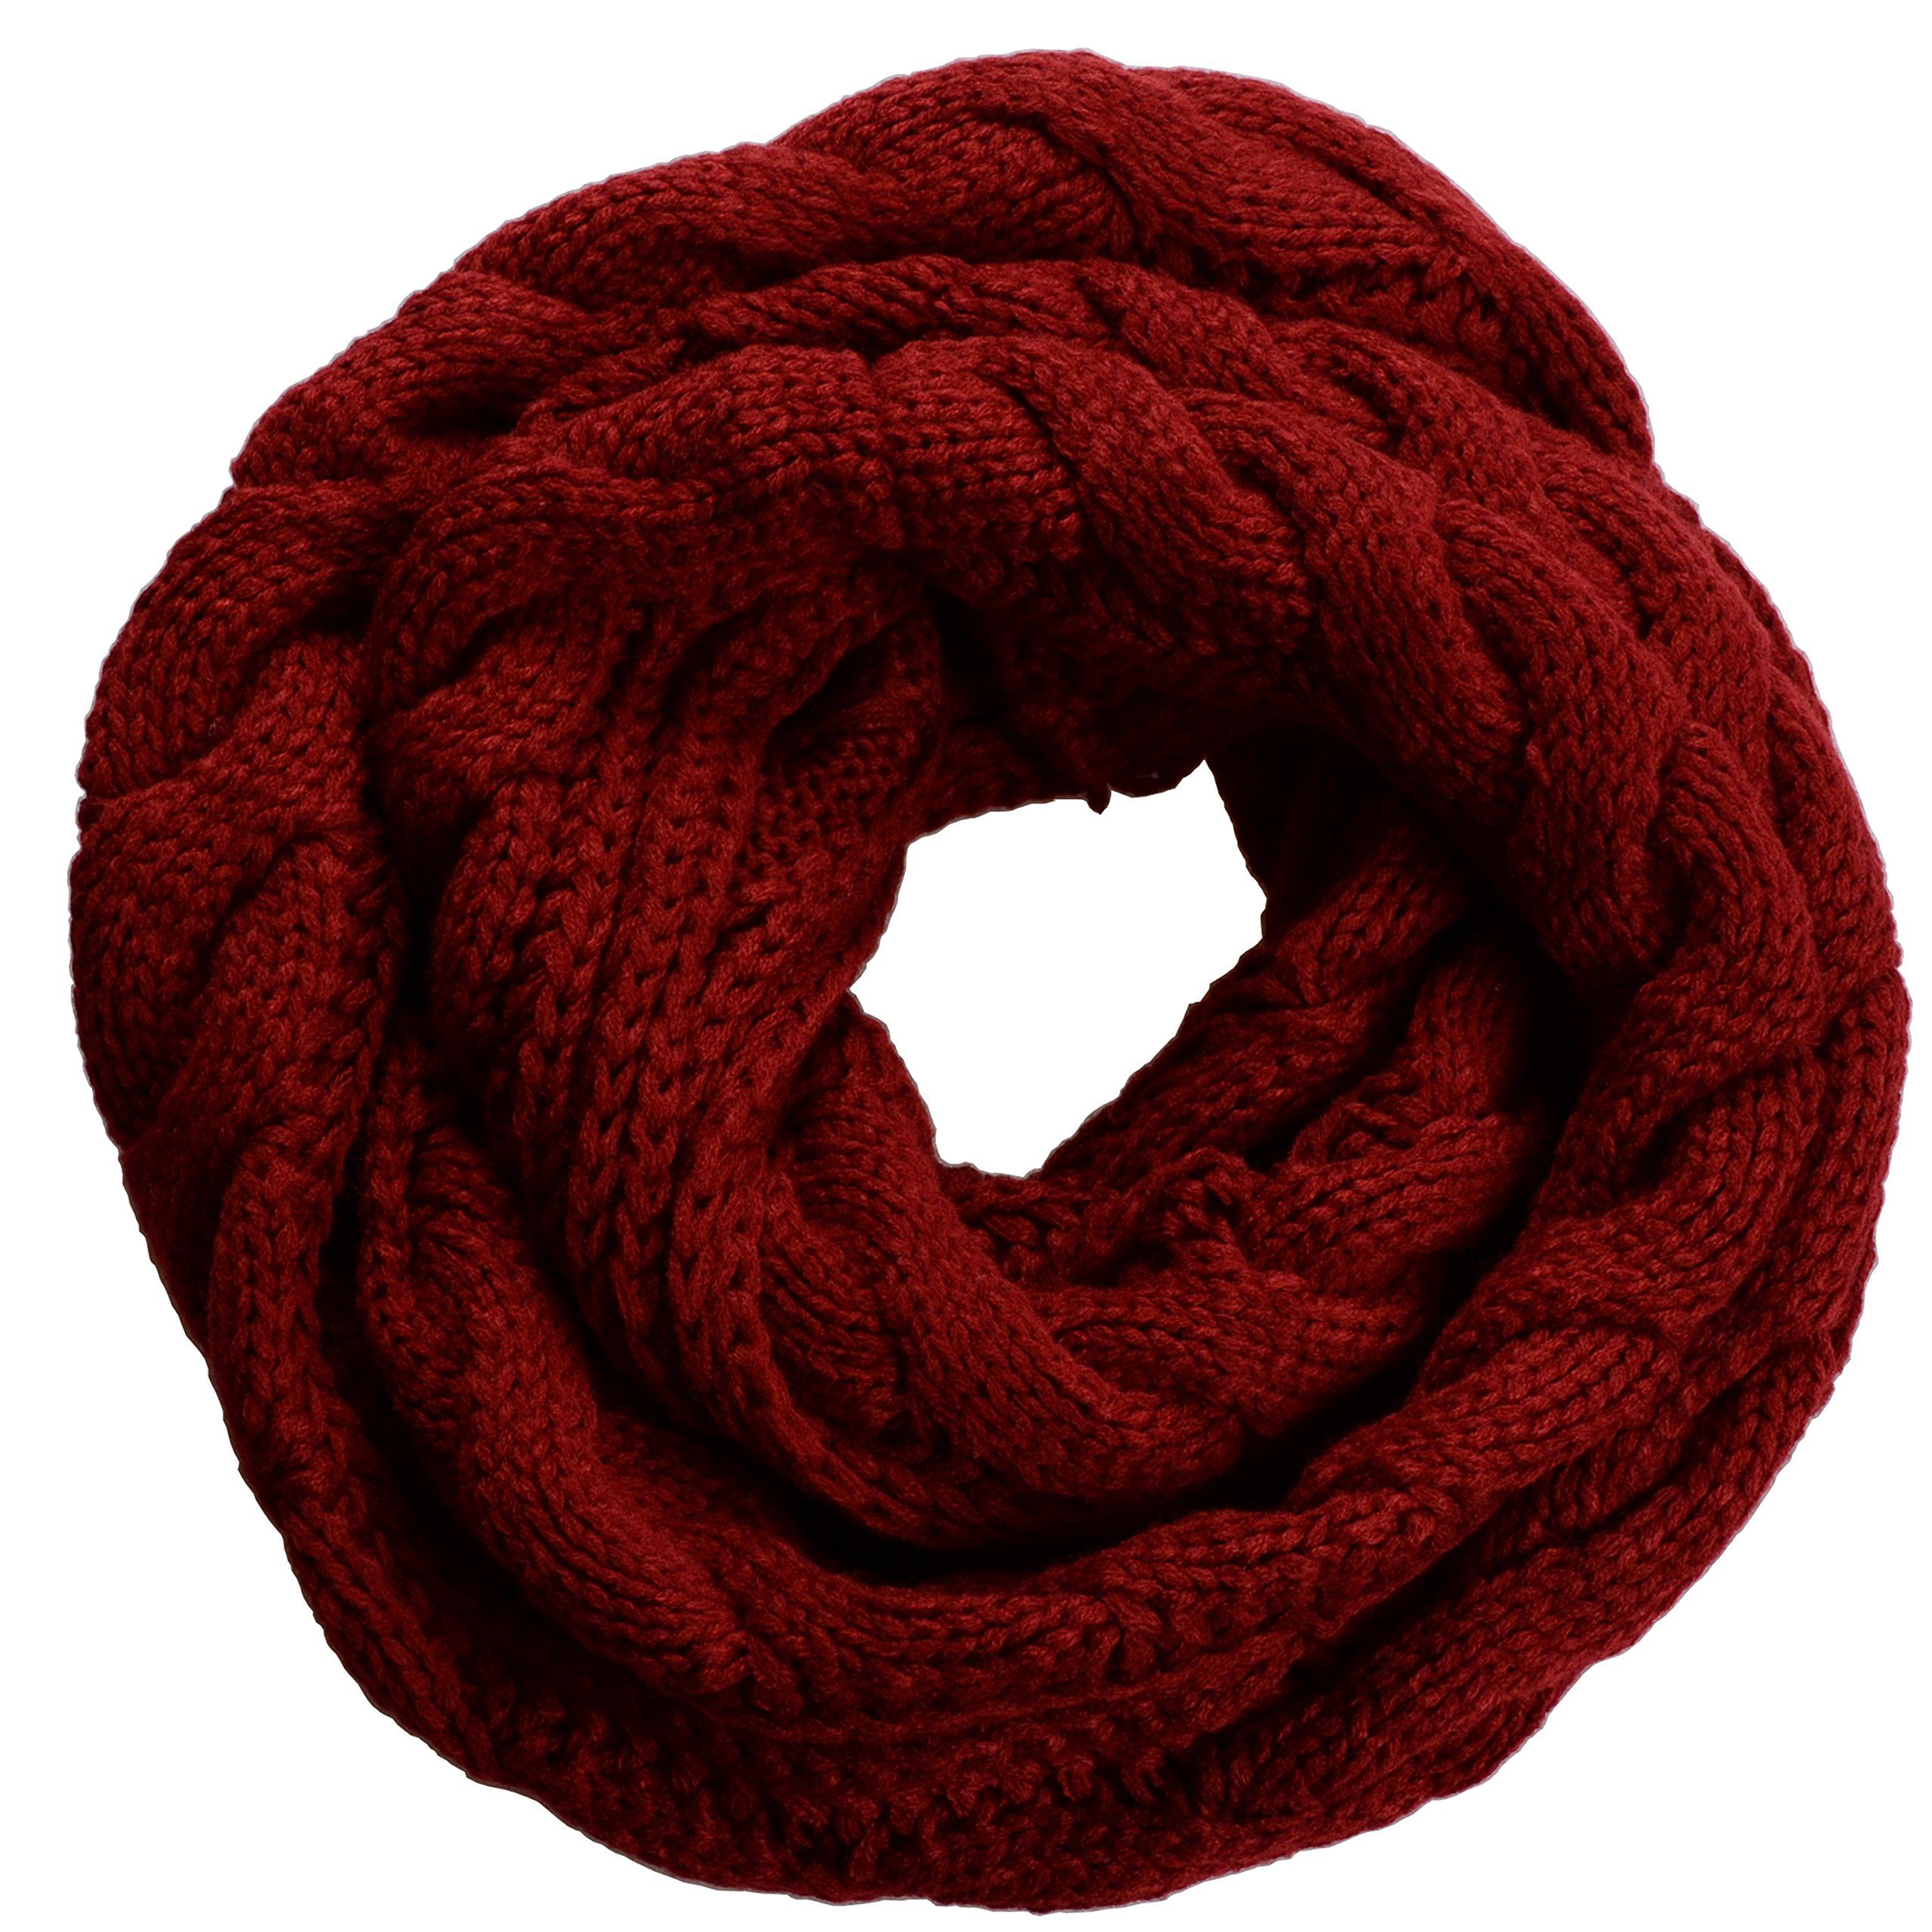 NEOSAN Womens Thick Ribbed Knit Winter Infinity Circle Loop Scarf Twist Claret by NEOSAN